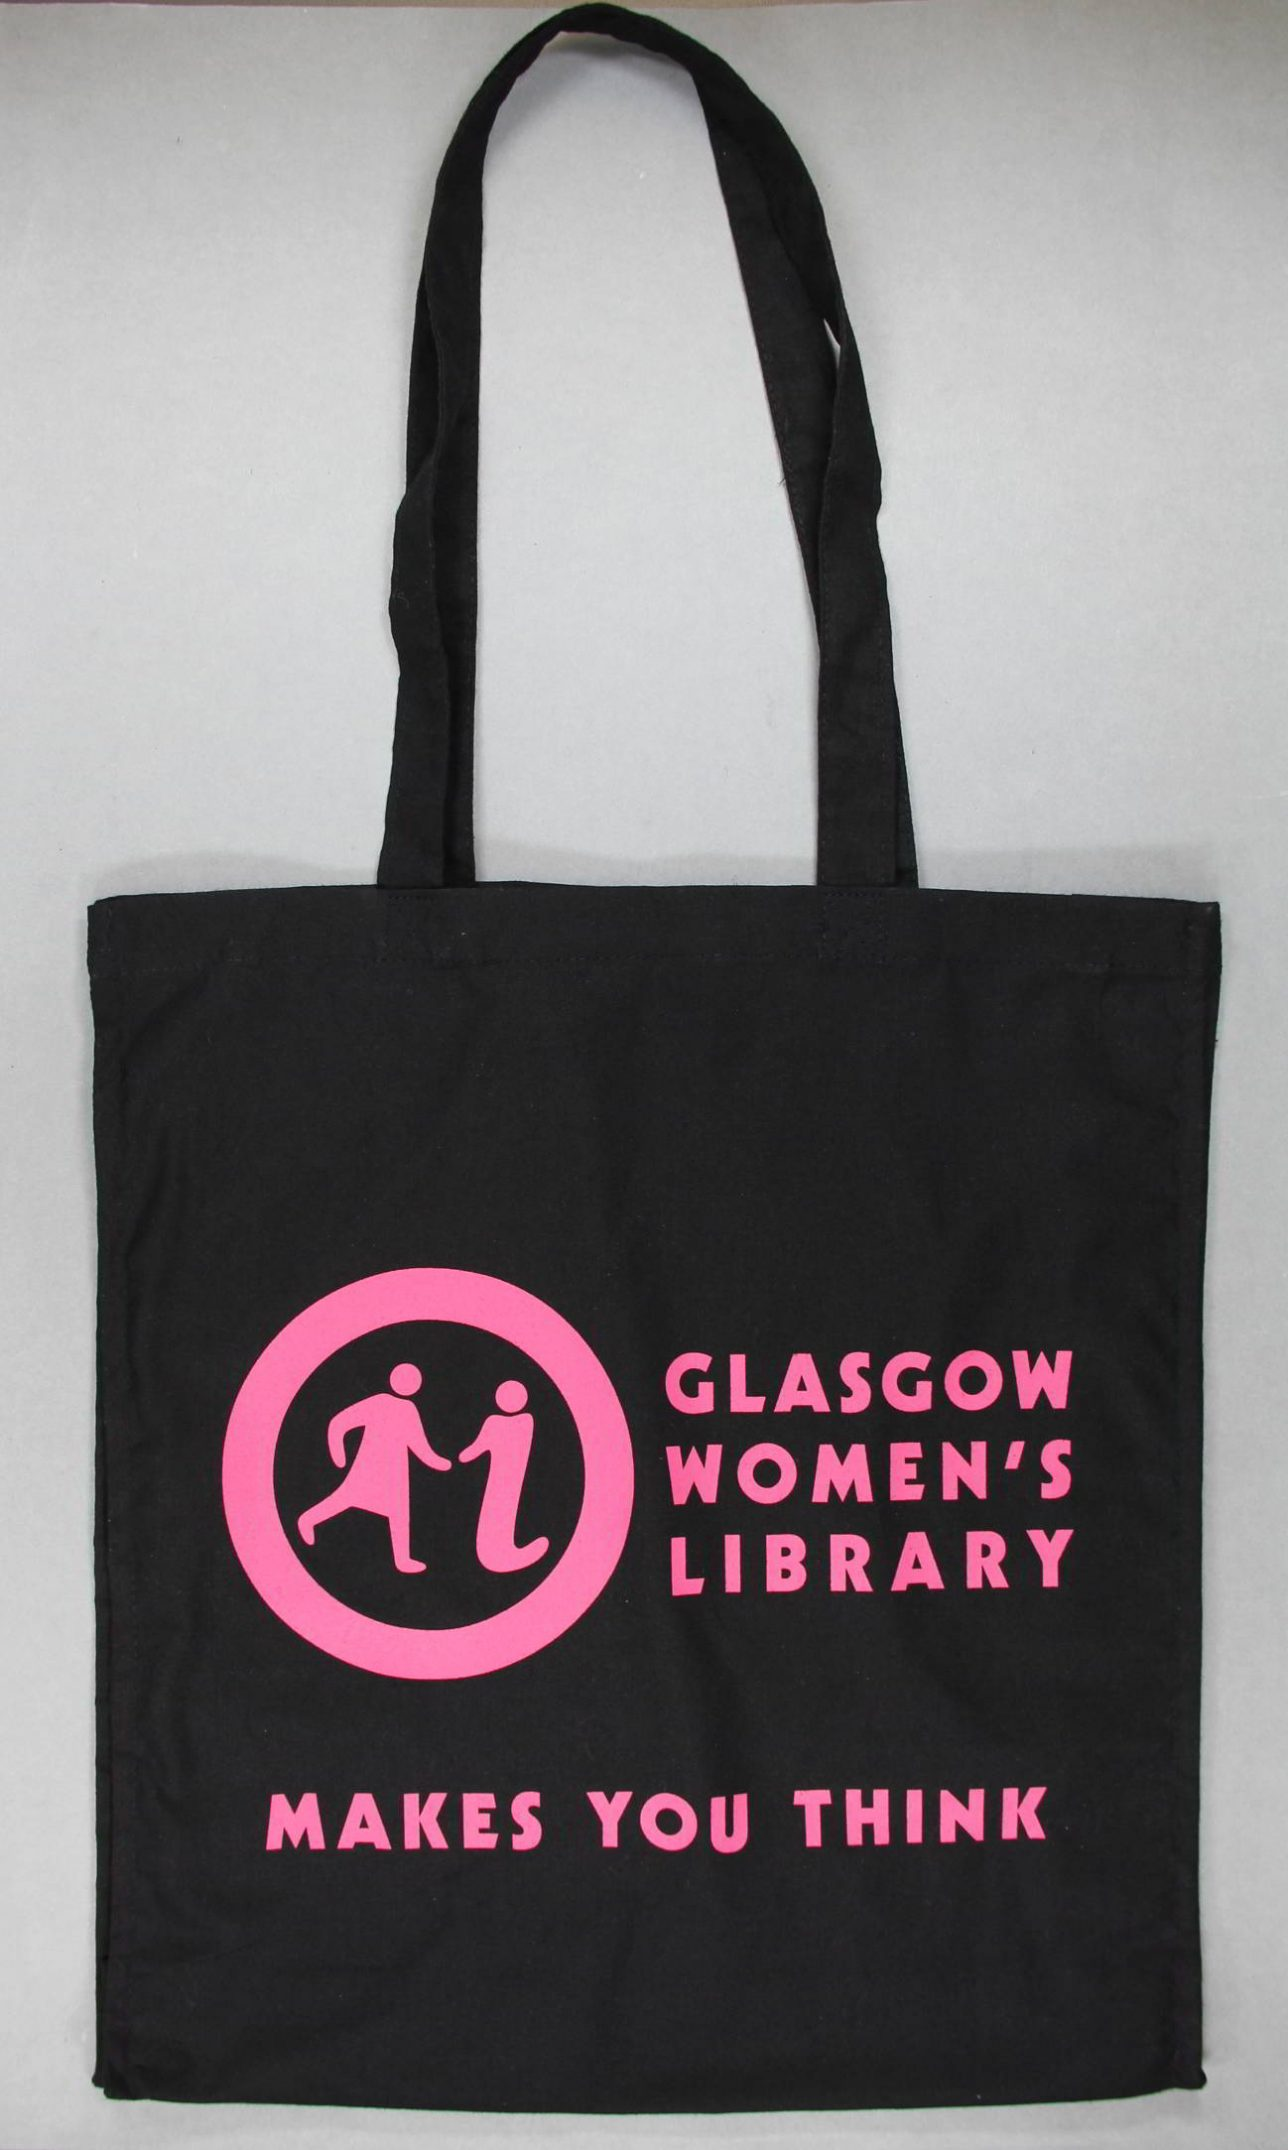 Black tote bag with bright pink text on it. It says 'Glasgow Women's Library' and 'Makes You Think' on it.